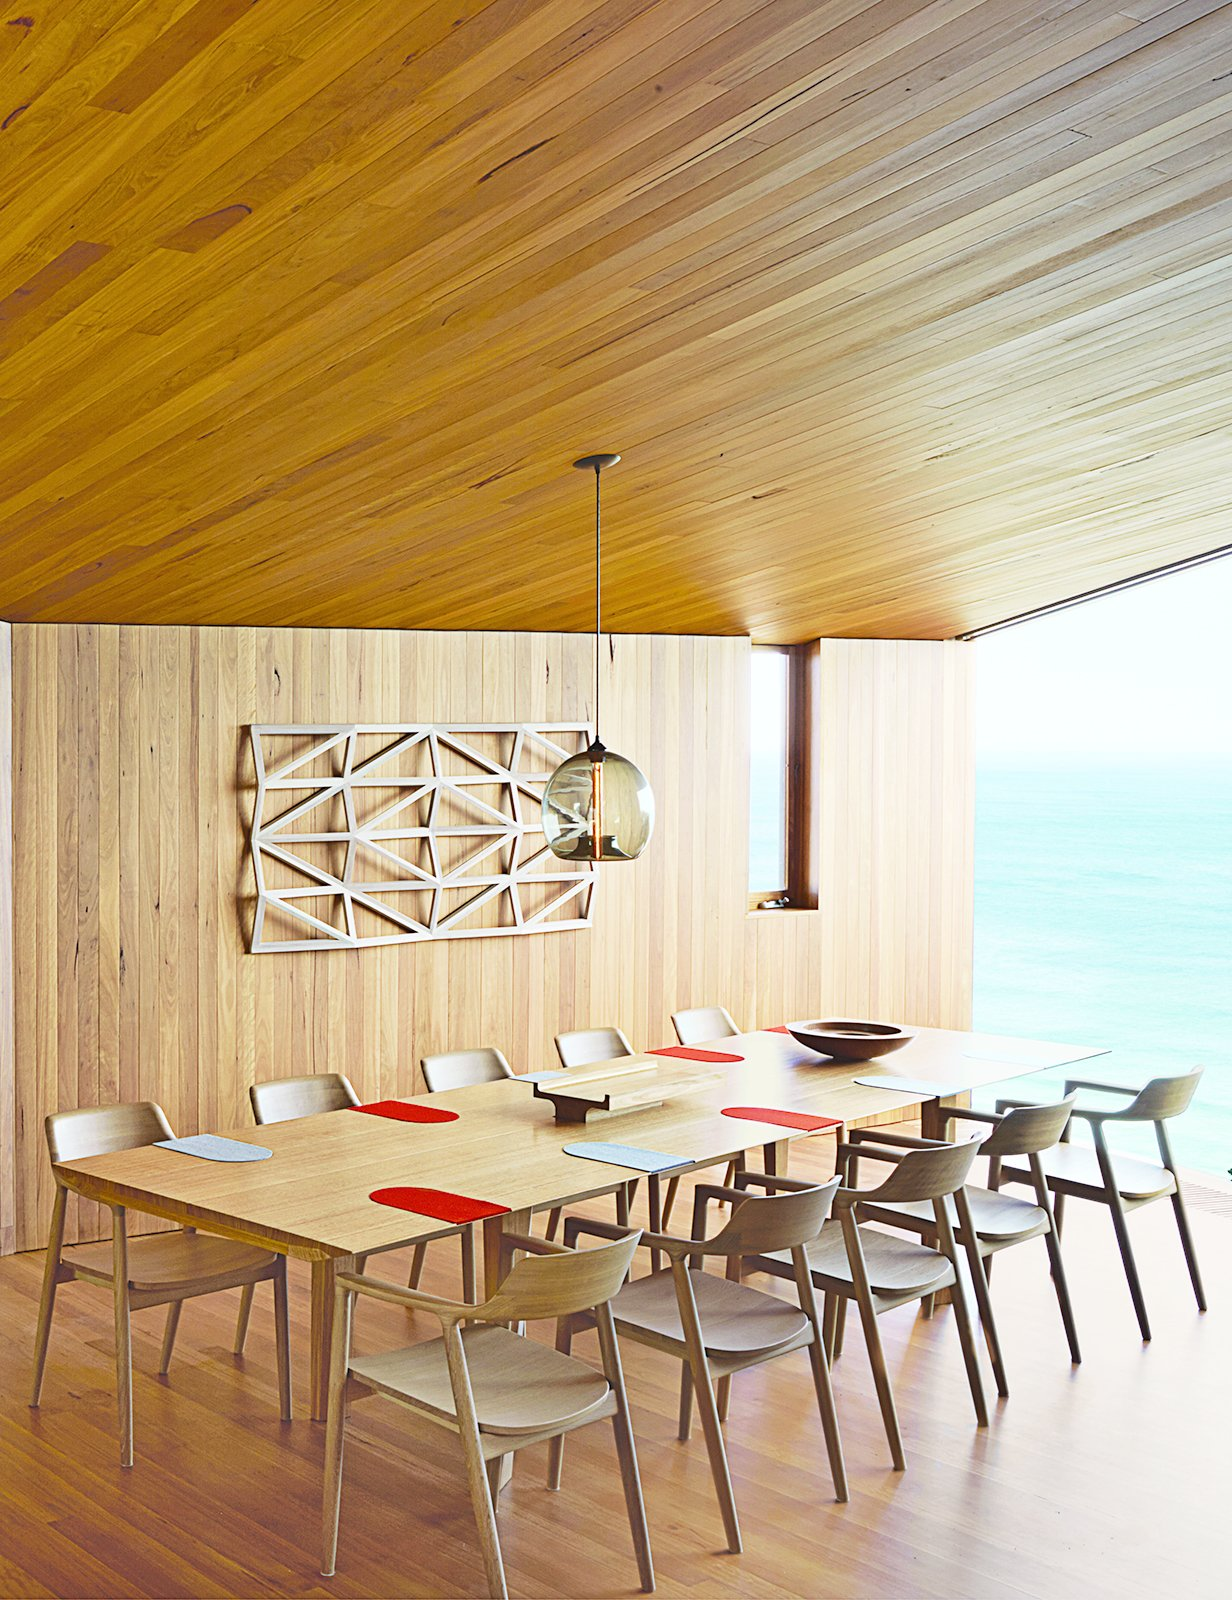 Dining Room, Chair, Pendant Lighting, Table, and Medium Hardwood Floor Wardle's firm also designed the dining table, where up to ten guests can gaze out at the Southern Ocean. The solid-oak Hiroshima chairs are designed by Maruni.  Photo 24 of 41 in 50 Dashing Dining Rooms from A Eucalyptus-Lined Oceanfront Home in Australia